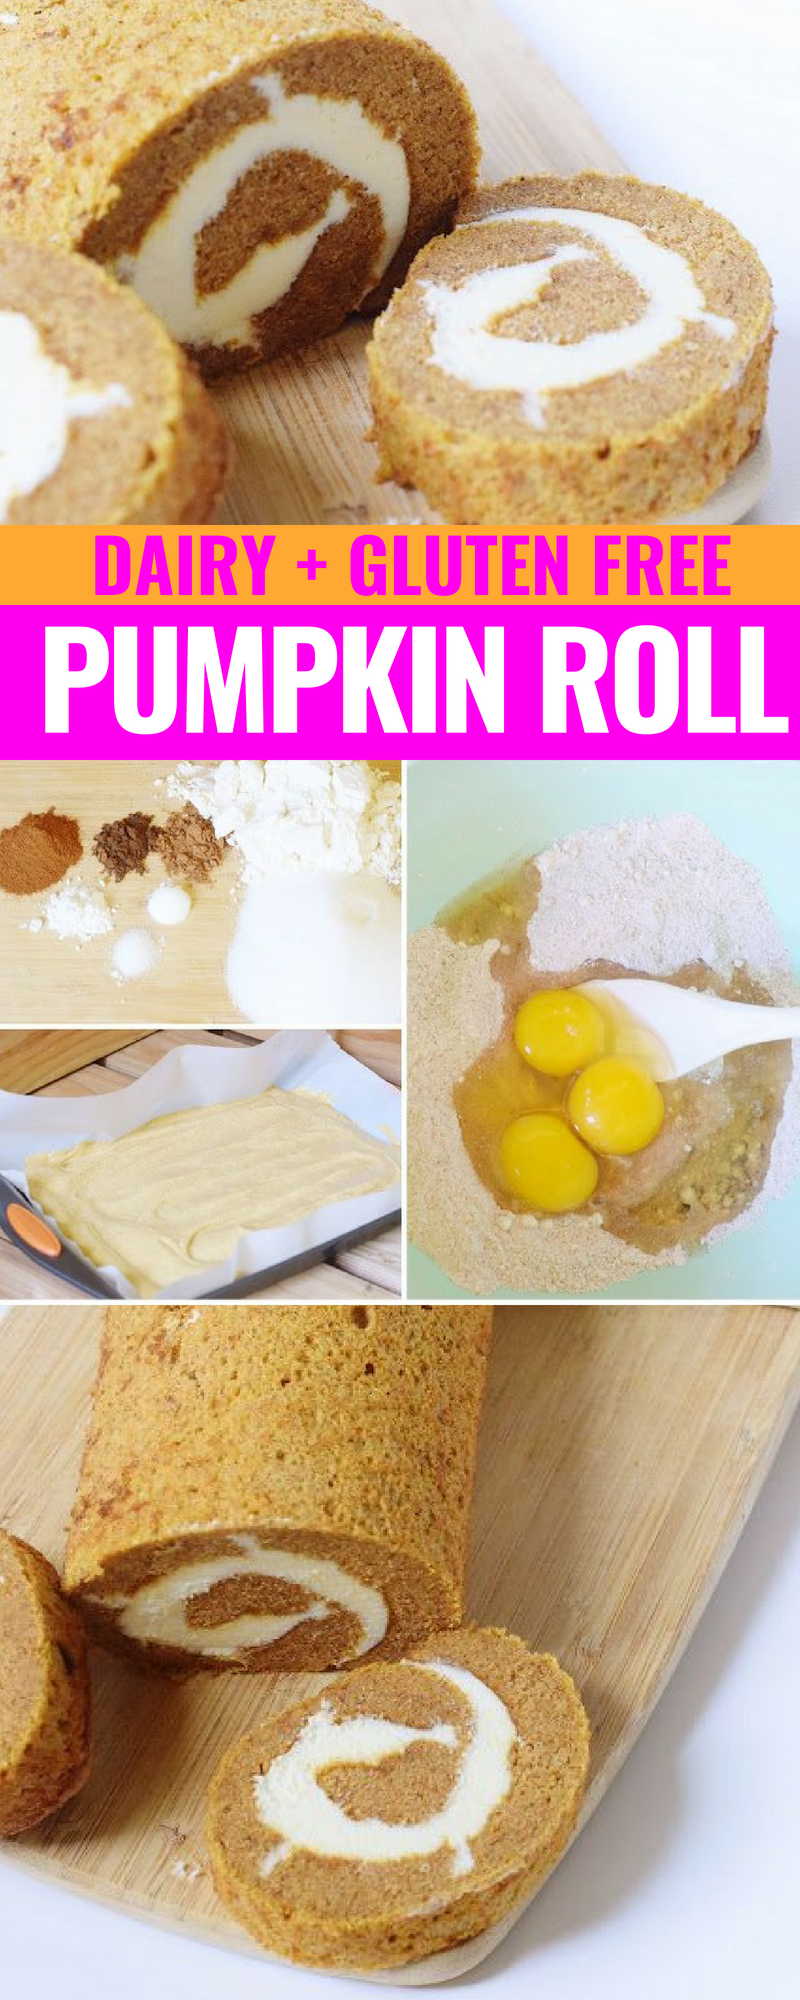 Pumpkin Roll With A Spice Cake Mix Recipe